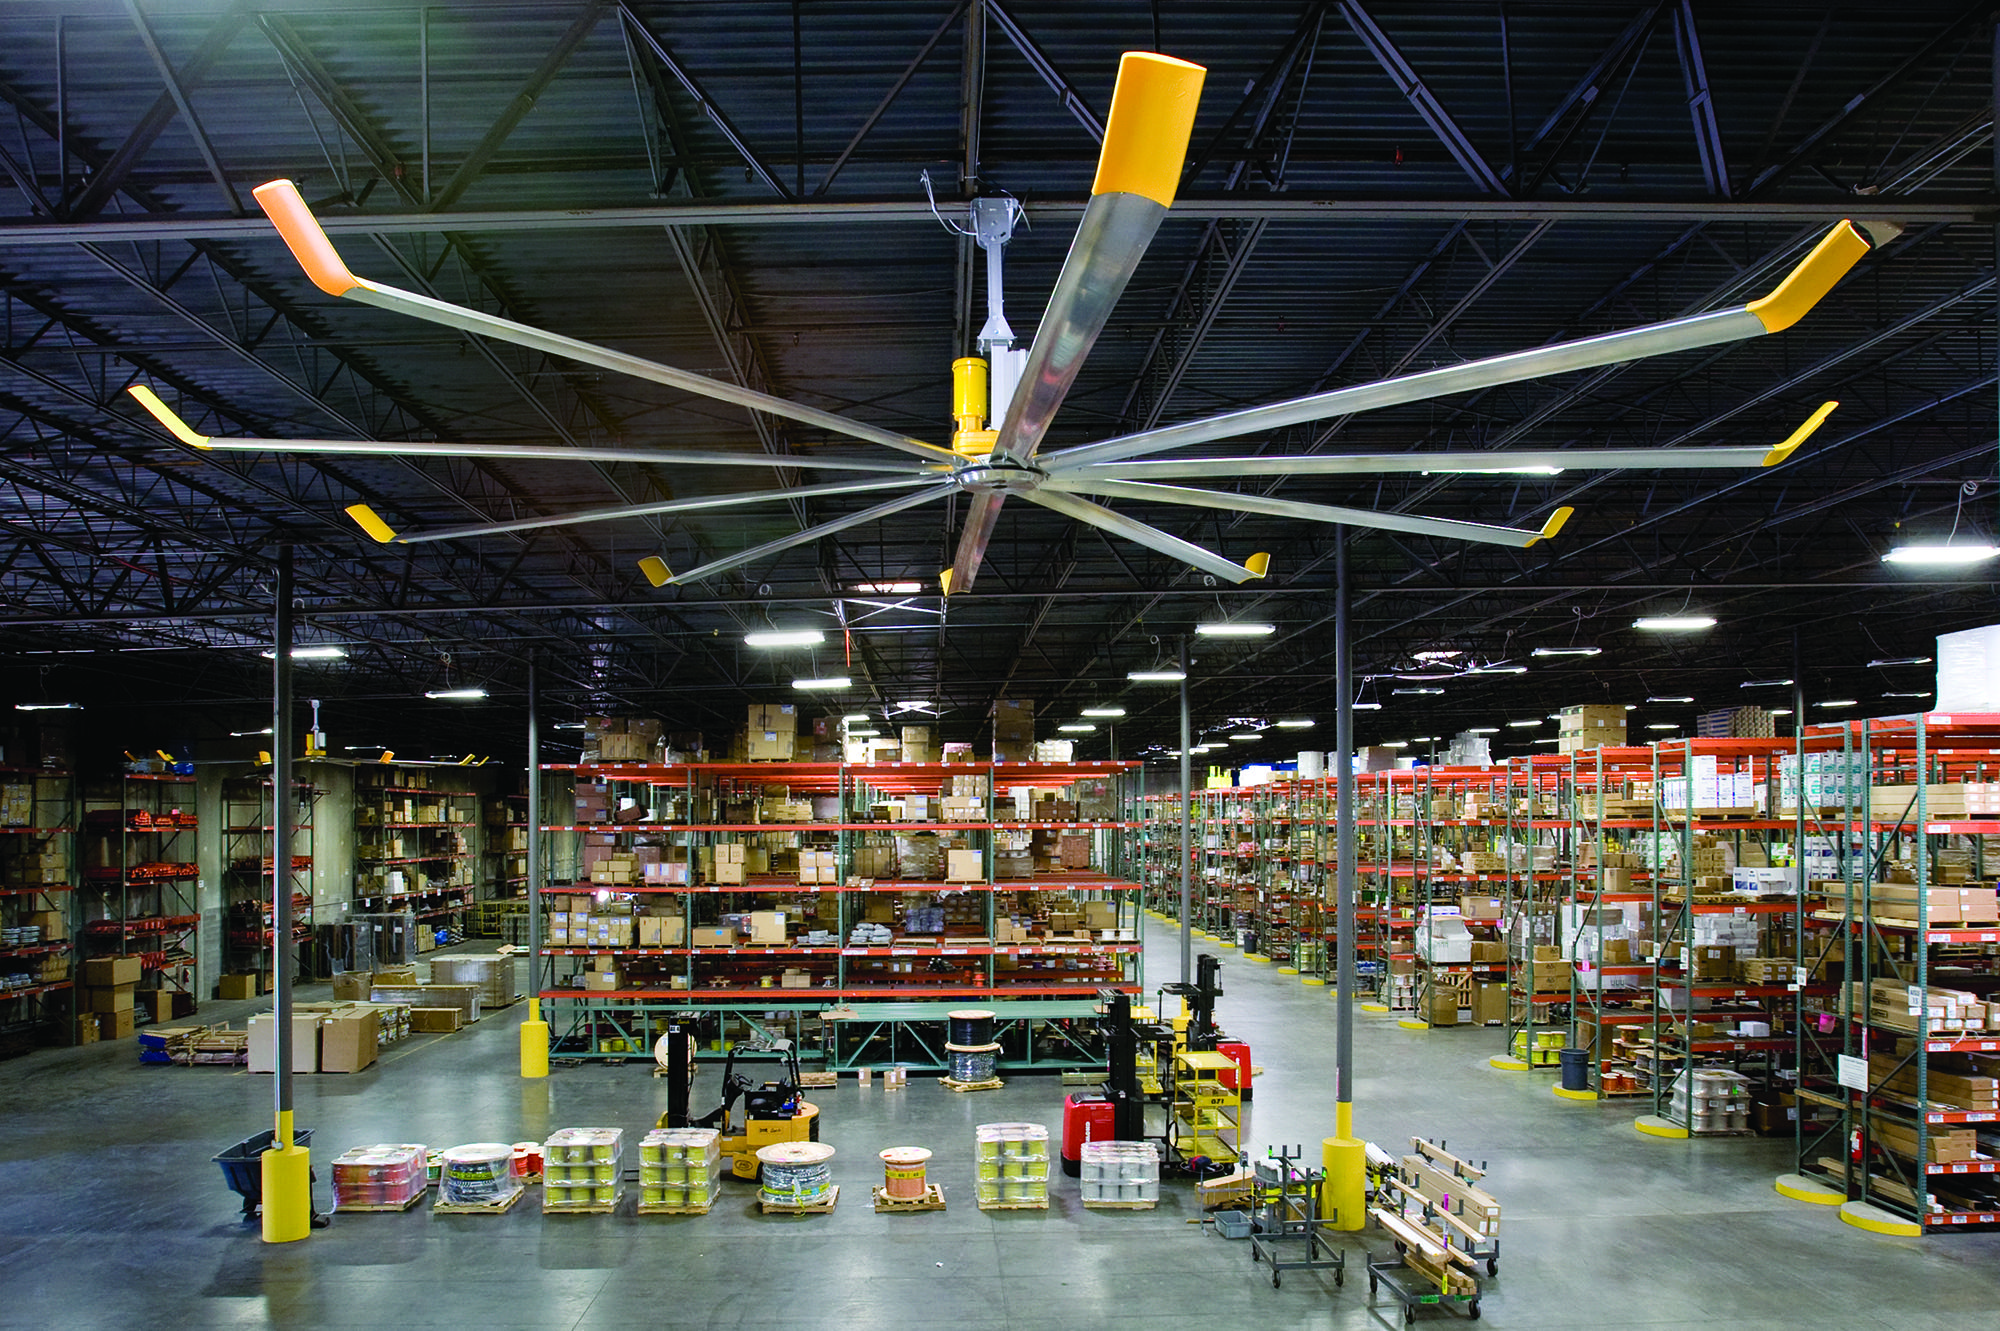 Big Ceiling Fans Australia Warehouse Distribution Big Ass Fans Australia